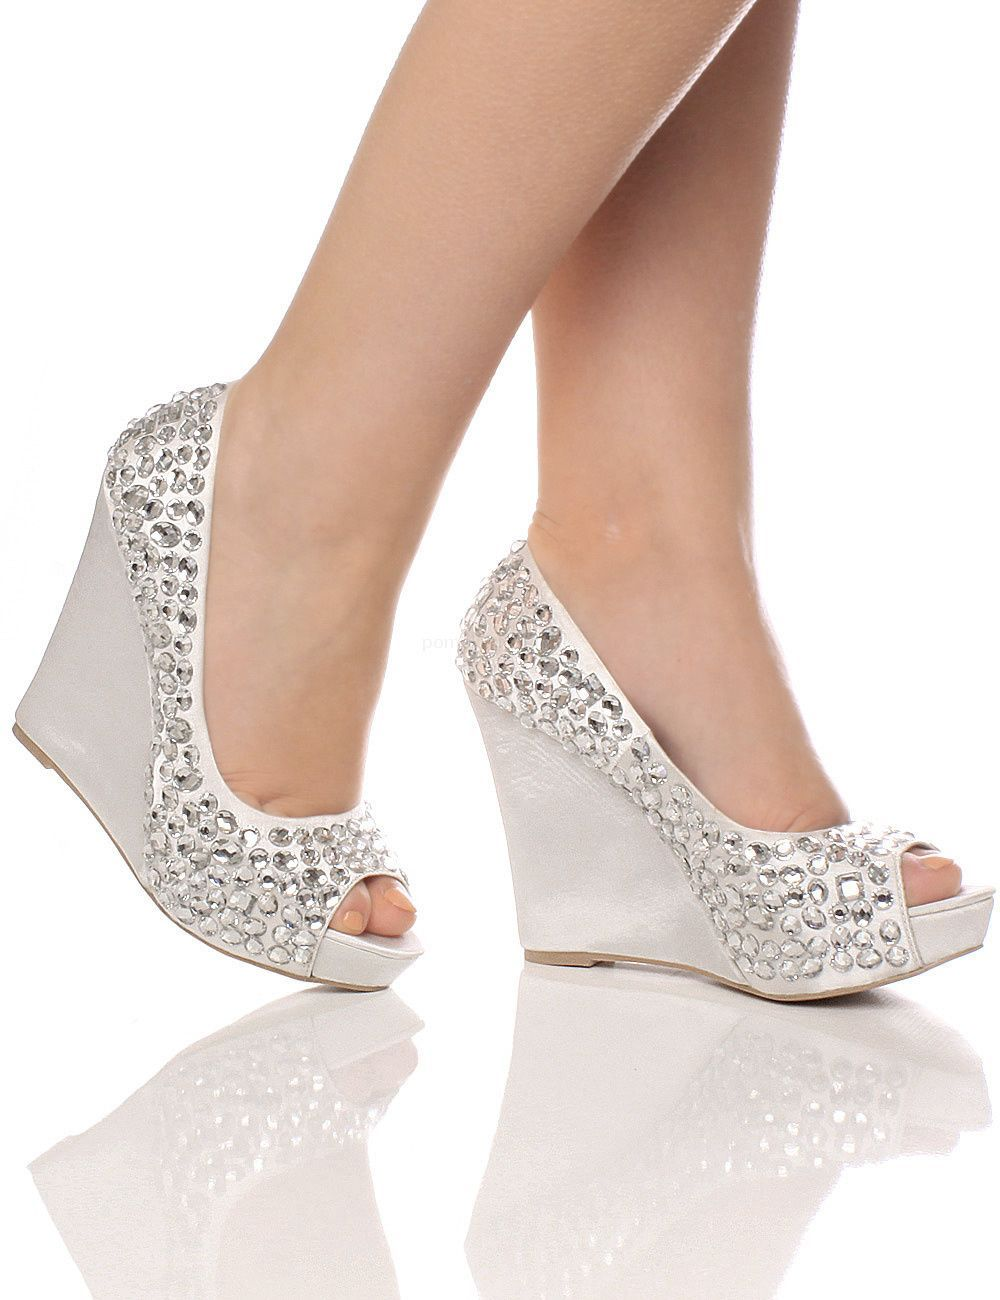 e1cdd47465 WOMENS WEDDING PLATFORM WEDGE LADIES BRIDAL SANDALS EVENING PROM SHOES SIZE Silver  Wedges